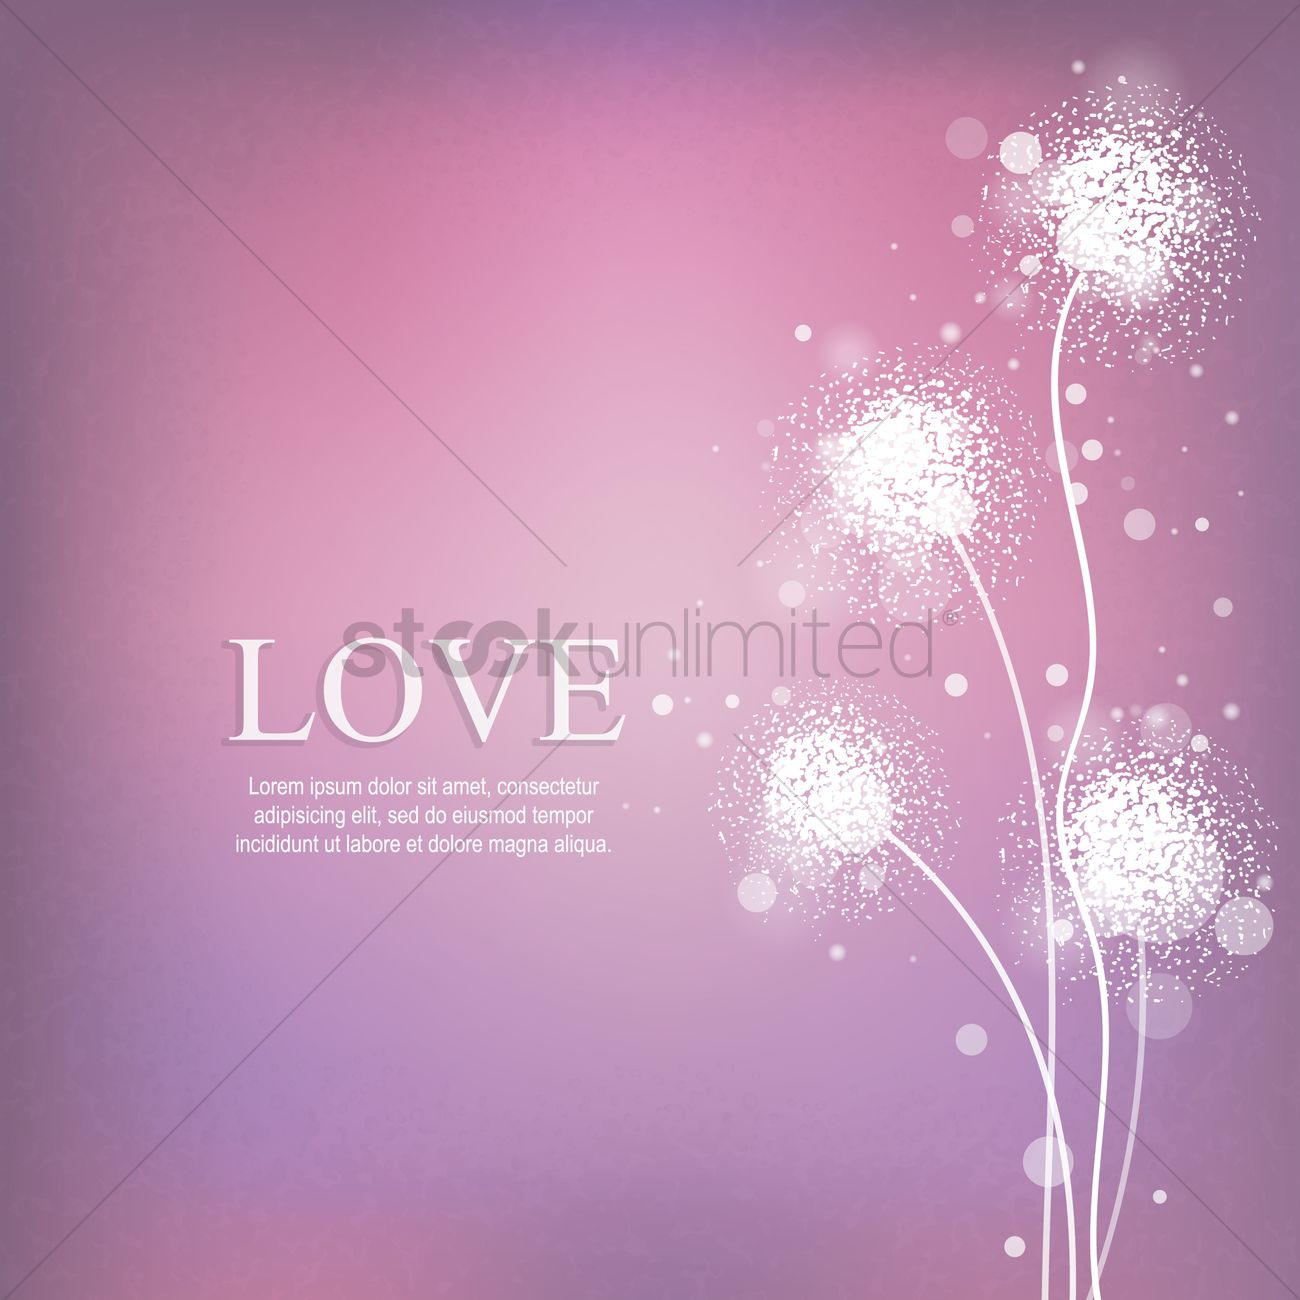 Love Wallpapers Vector : Love wallpaper Vector Image - 1499671 StockUnlimited